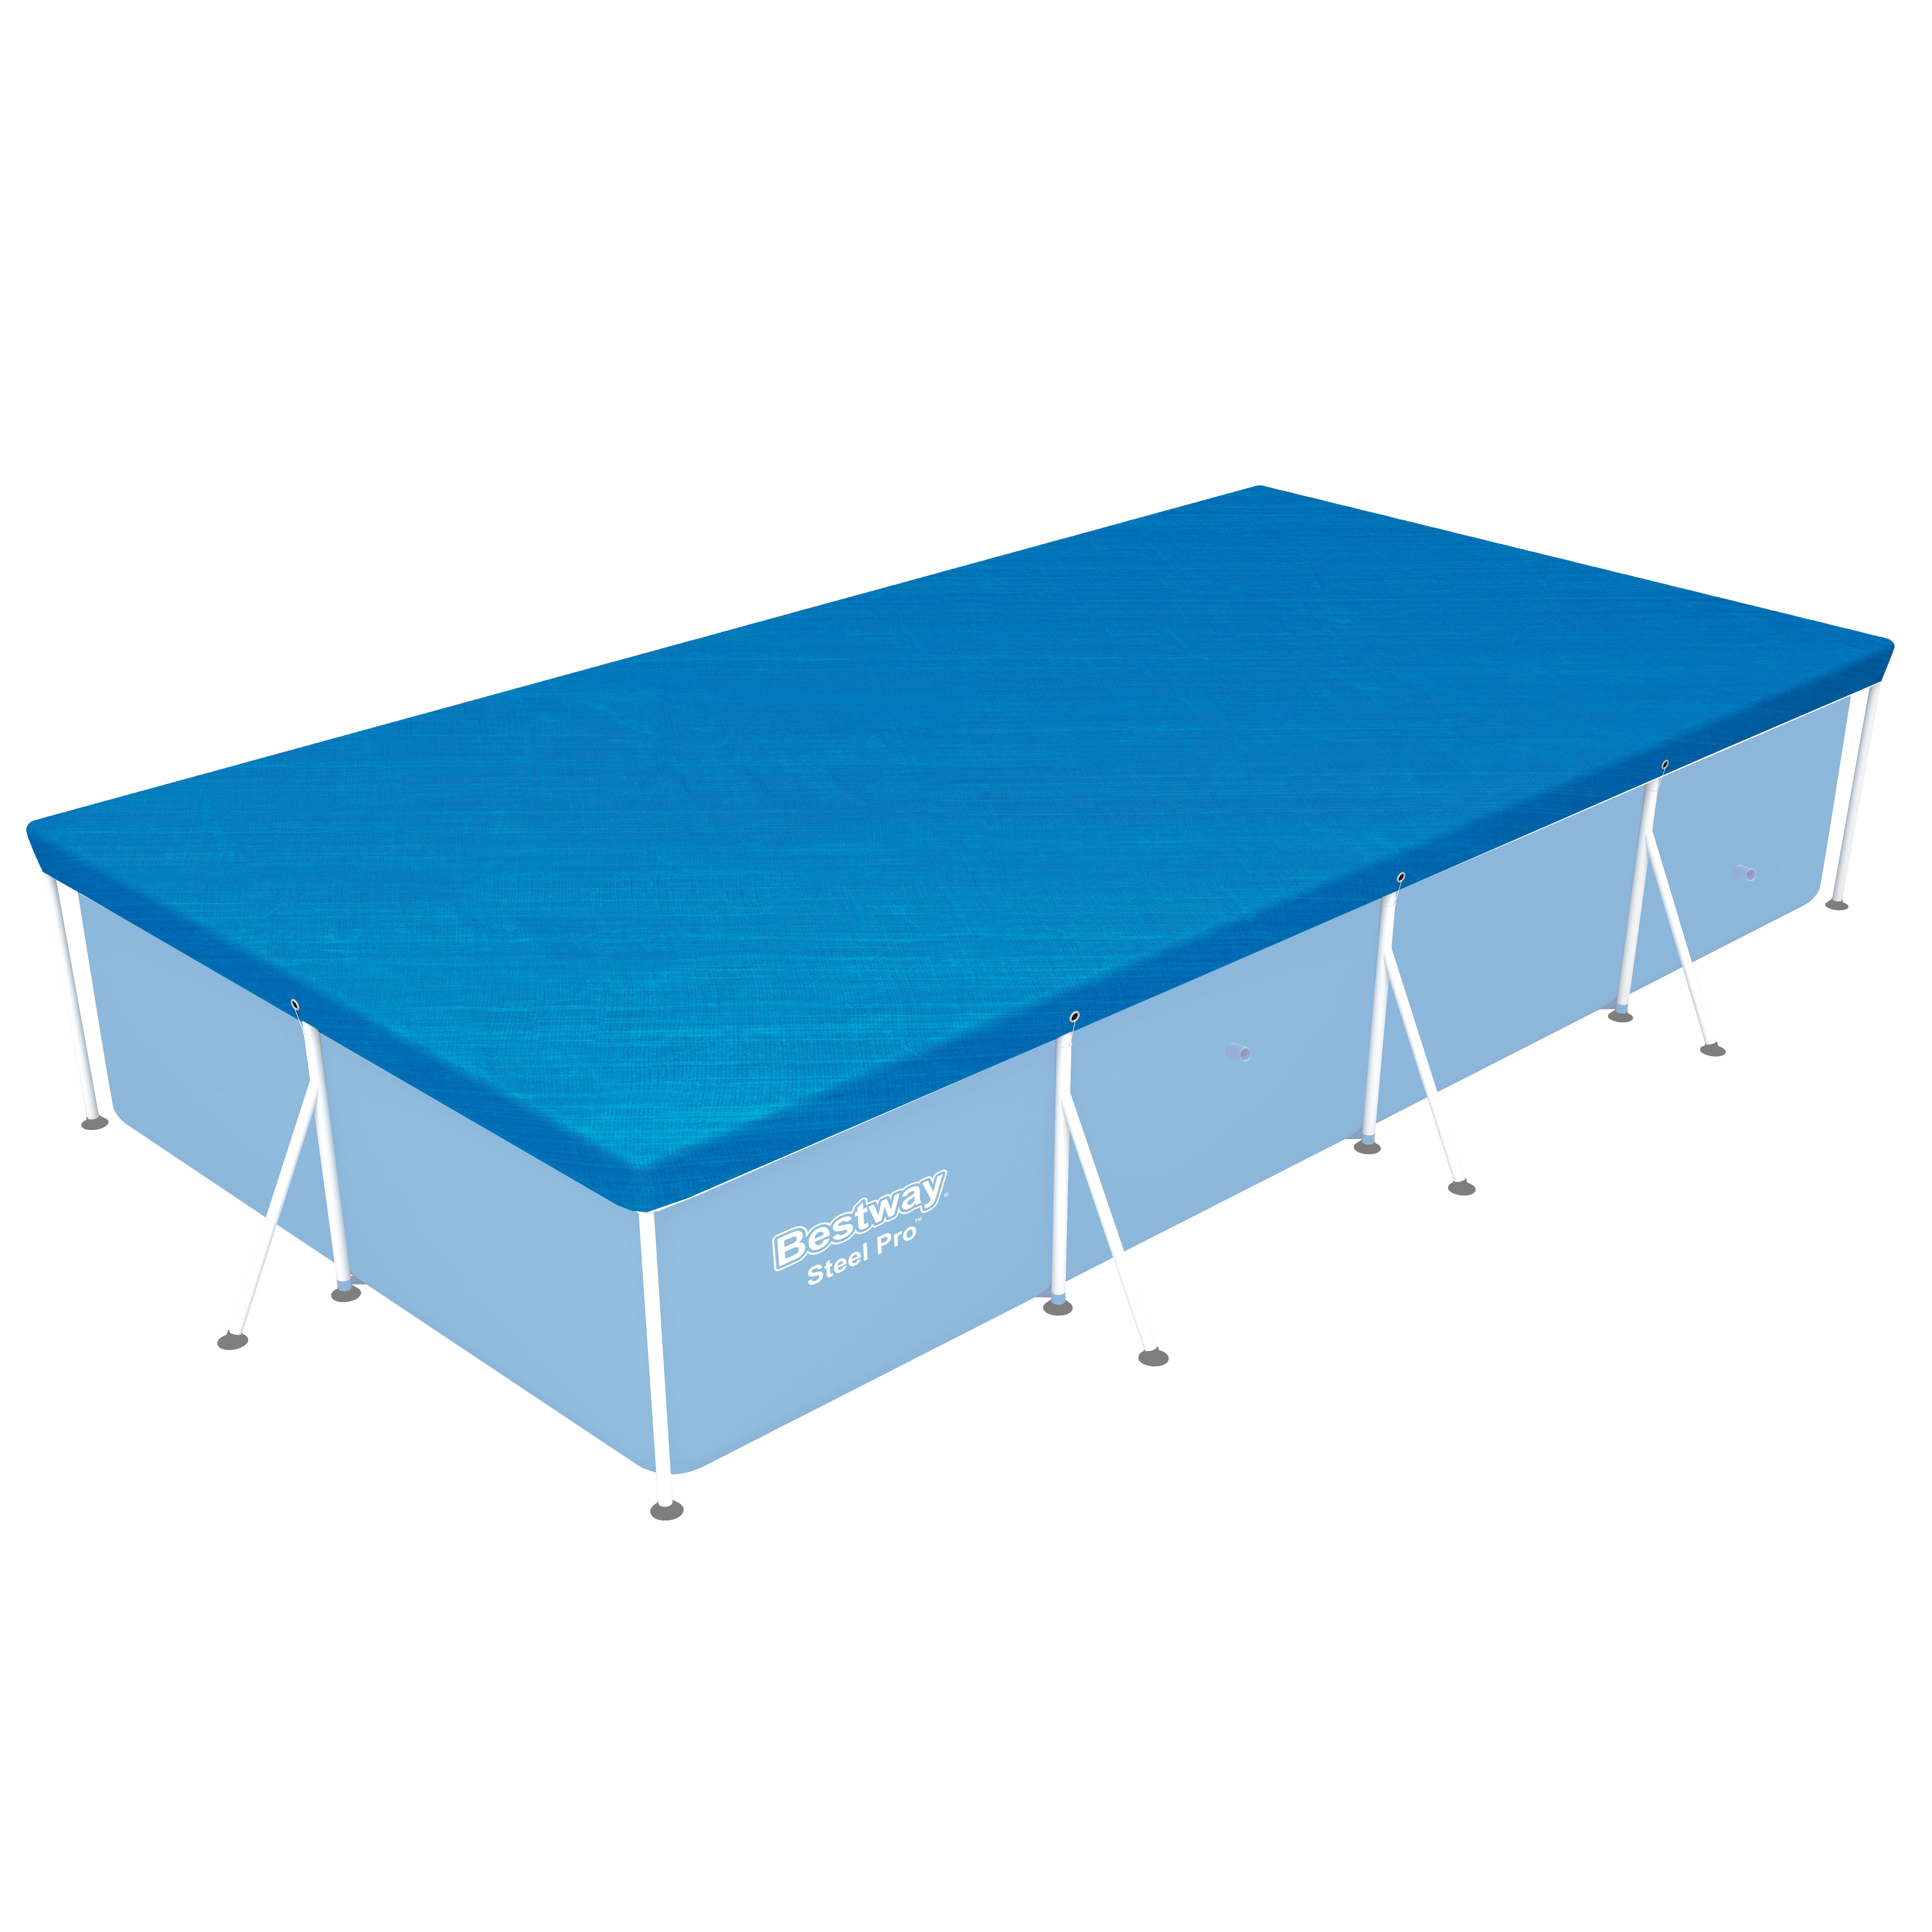 Details about Bestway 157 x 83 Inch Above Ground Swimming Pool Tarp Cover  for Steel Pro Pool